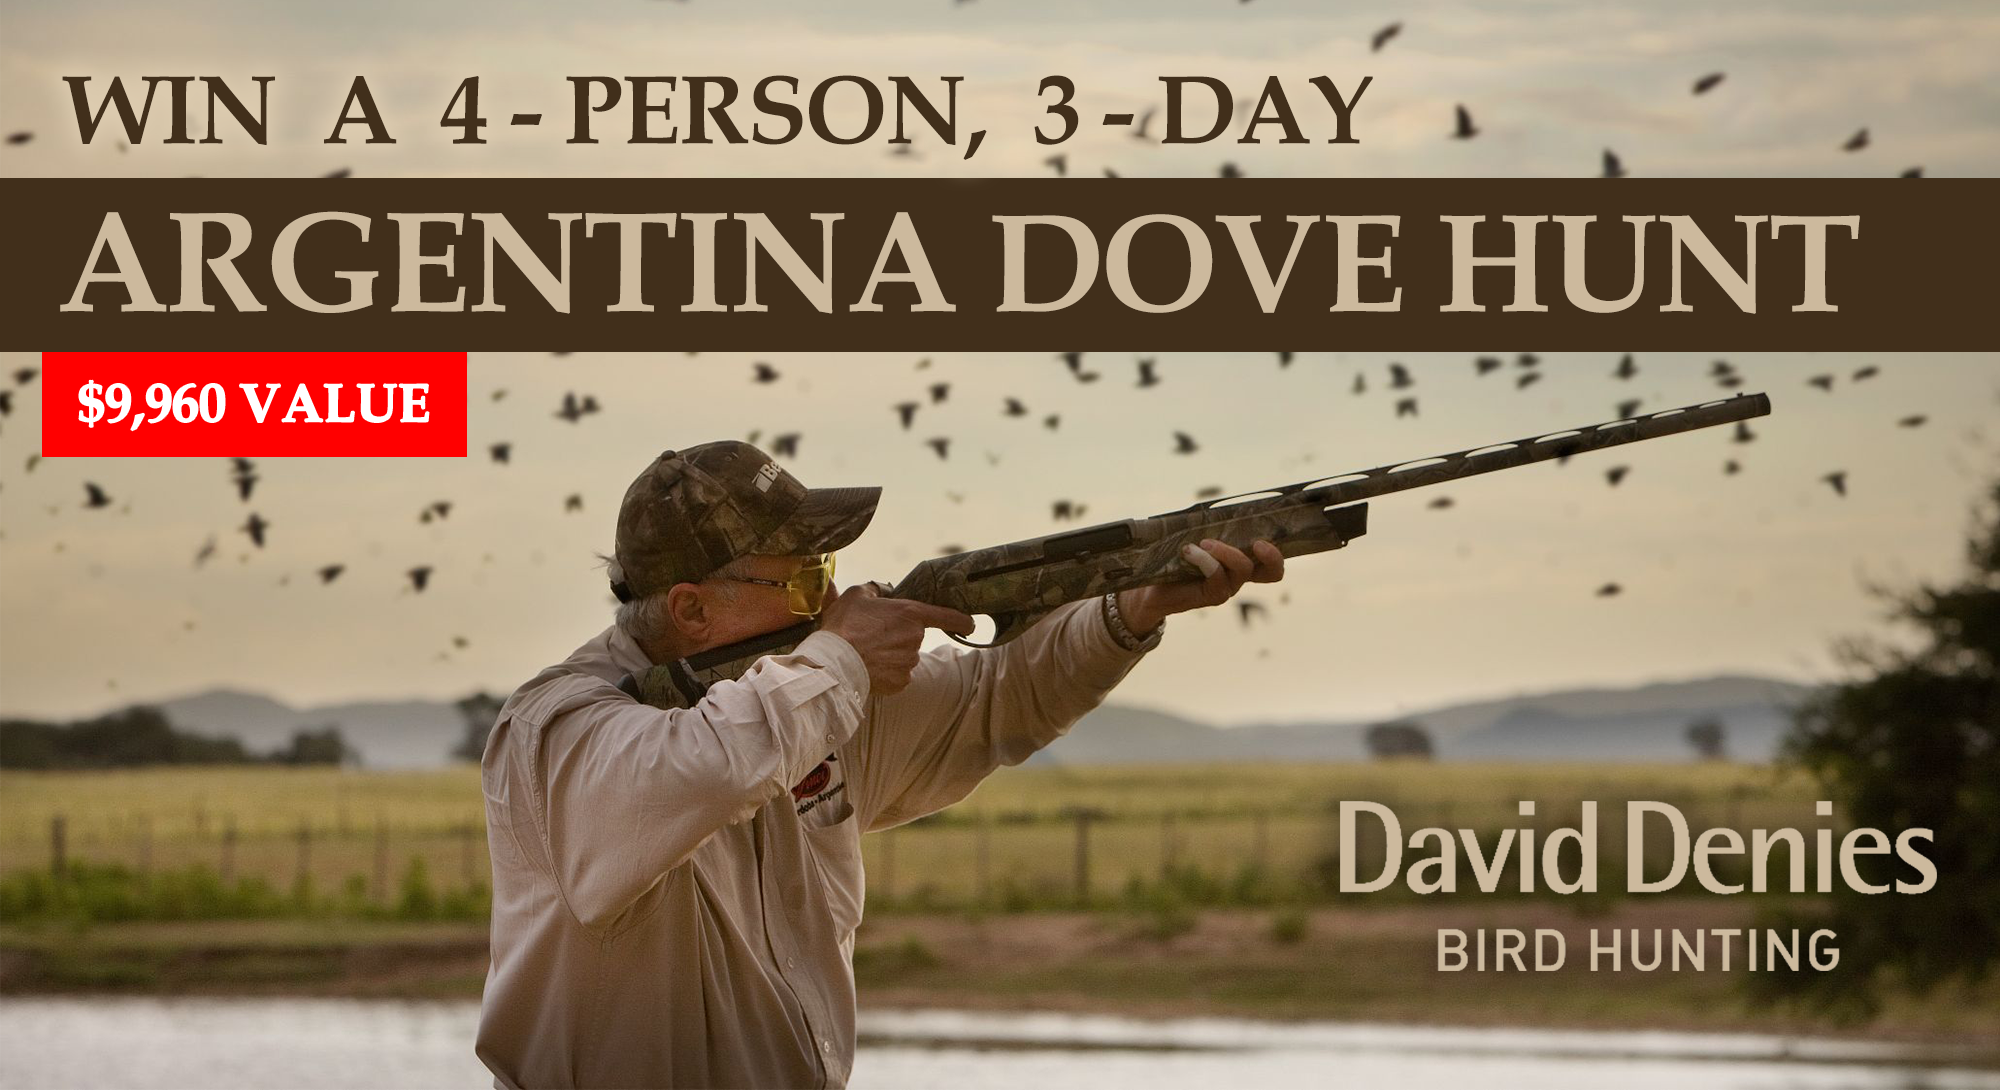 3-Day High Volume Dove Hunt in Argentina for 4 Poeple